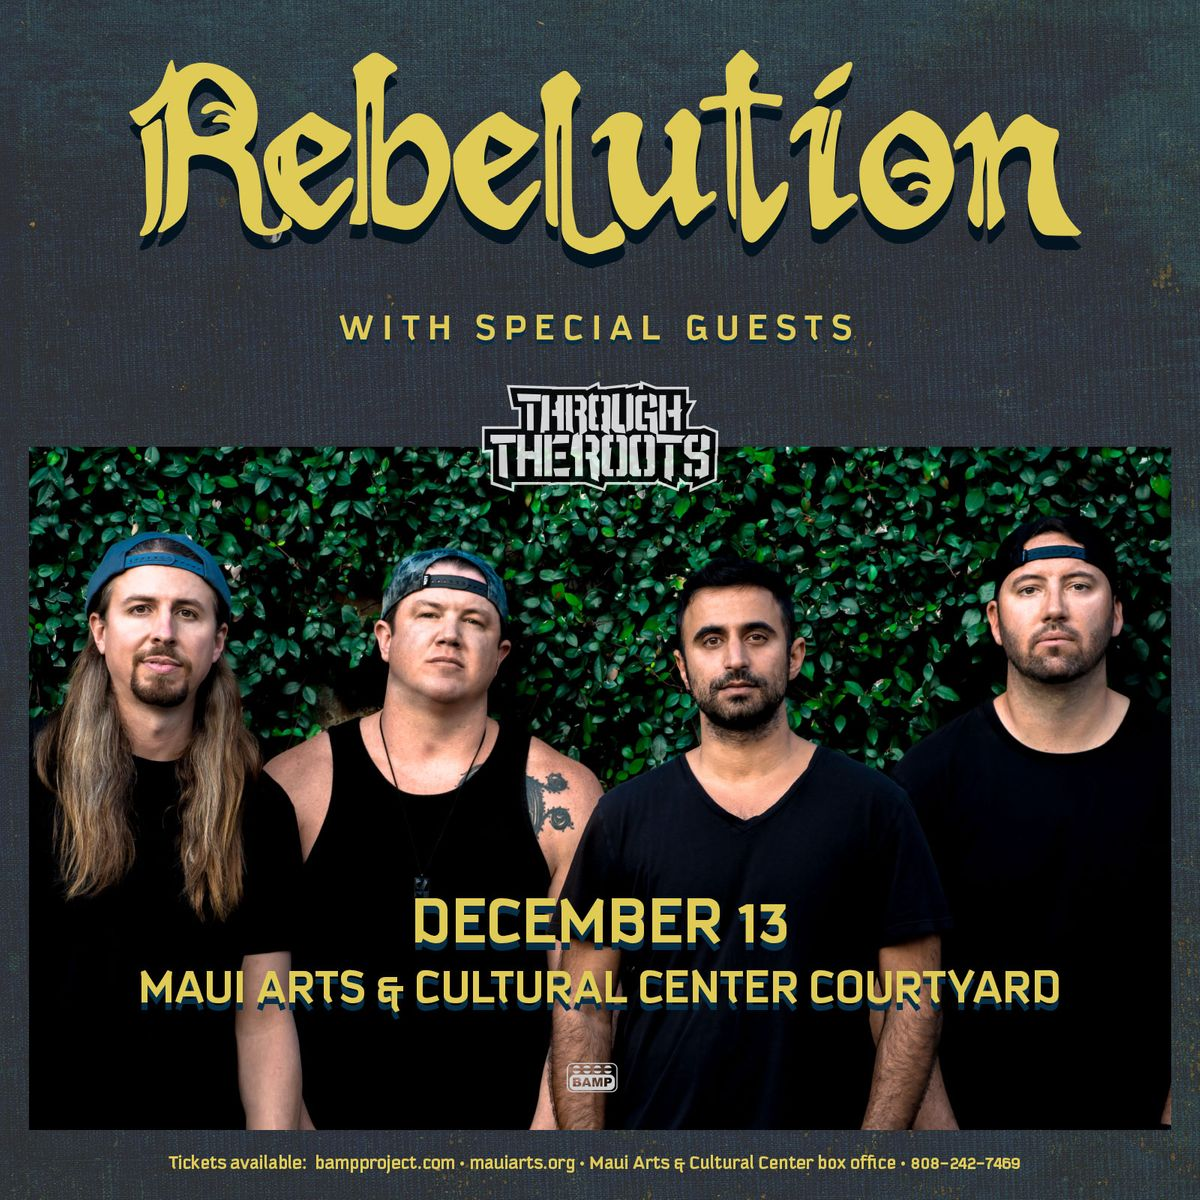 Rebelution_Maui_ig_1600x1600.jpg